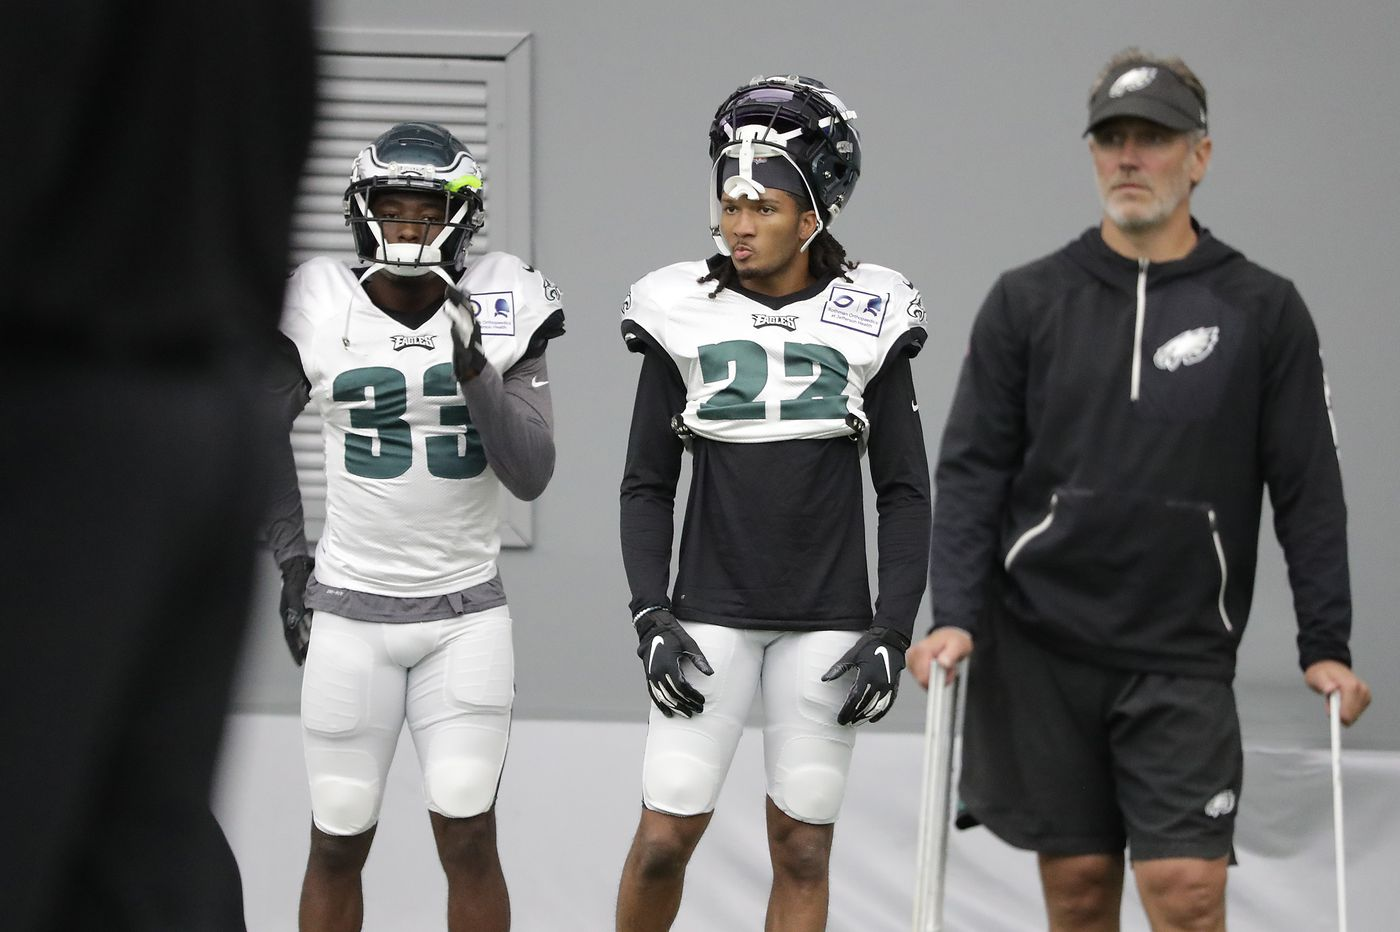 Doug Pederson says Sidney Jones needs to 'break through' and be confident in his recovery to play well